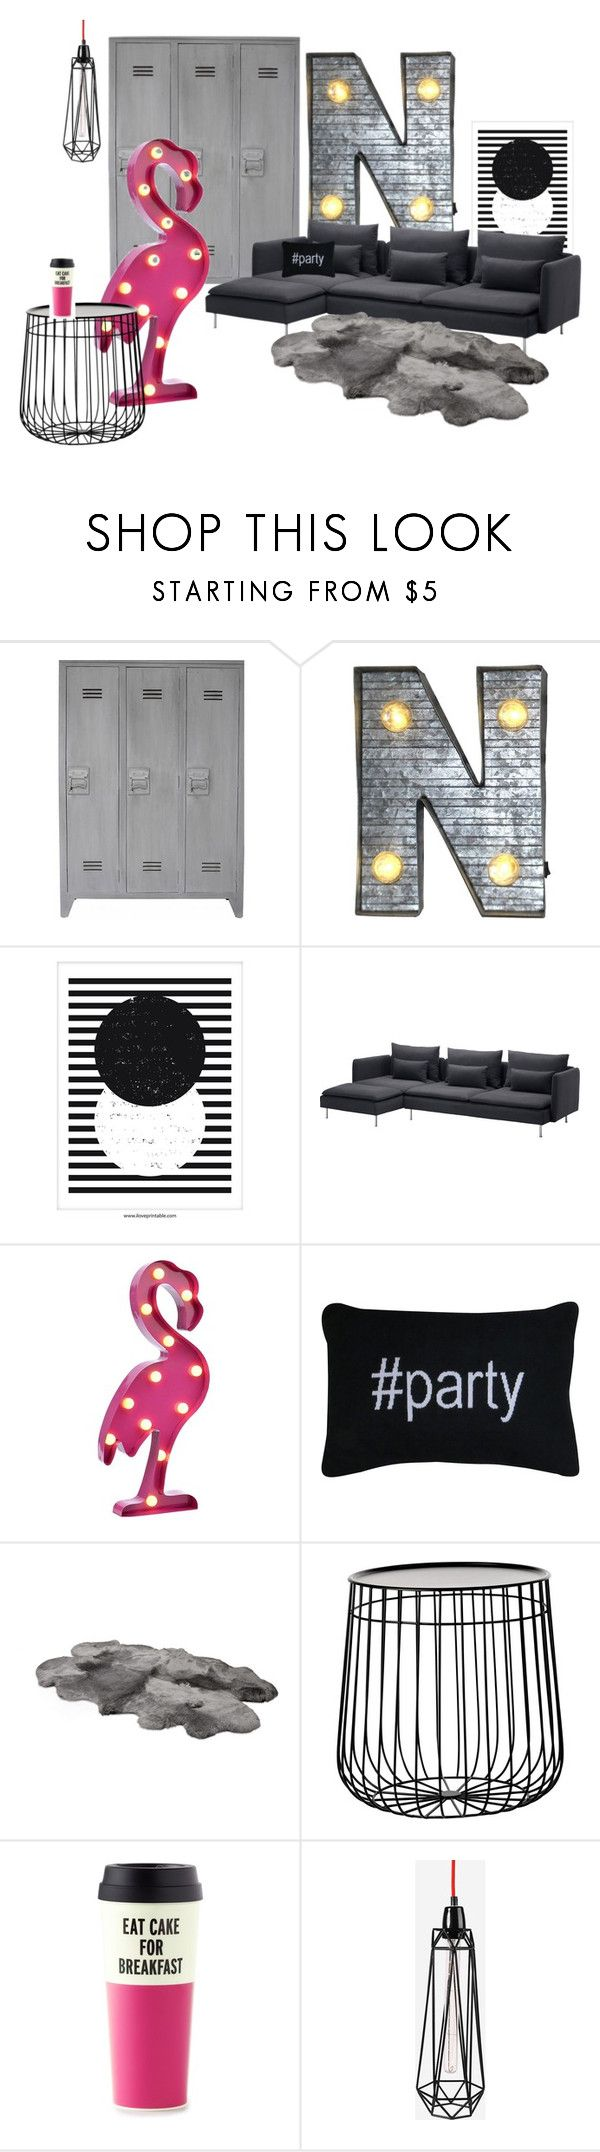 Natascha`s room 2016 by inger-malmgaard-petersen on Polyvore featuring interior, interiors, interior design, home, home decor, interior decorating, Pols Potten, FilamentStyle, Crystal Art and Kate Spade